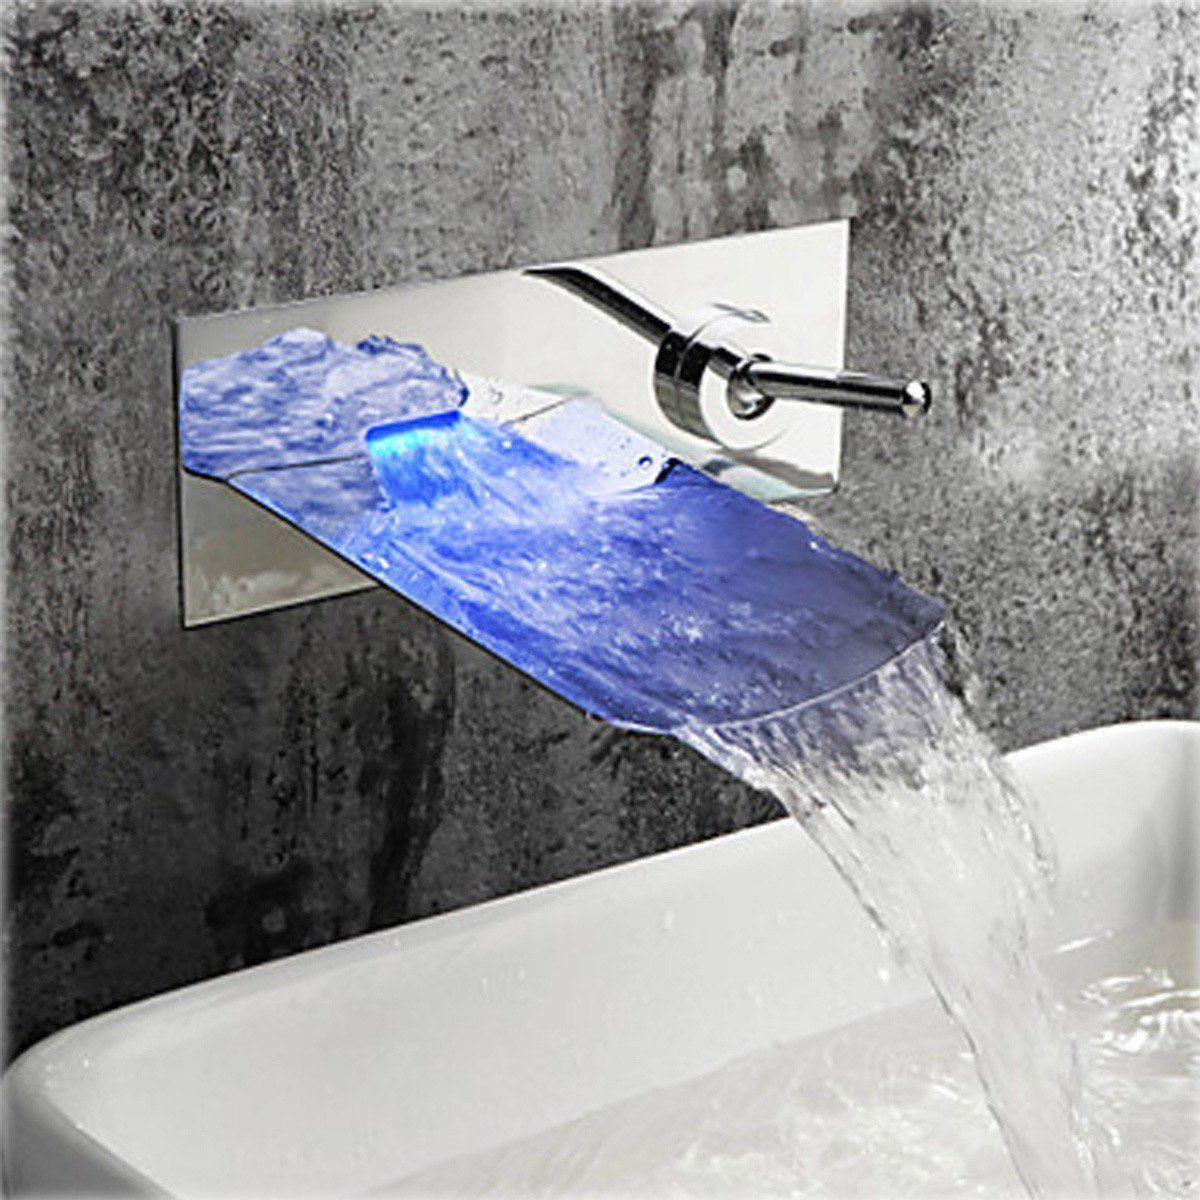 Led Waterfall Faucet A004 Bathroom Sink Taps Sink Faucets Wall